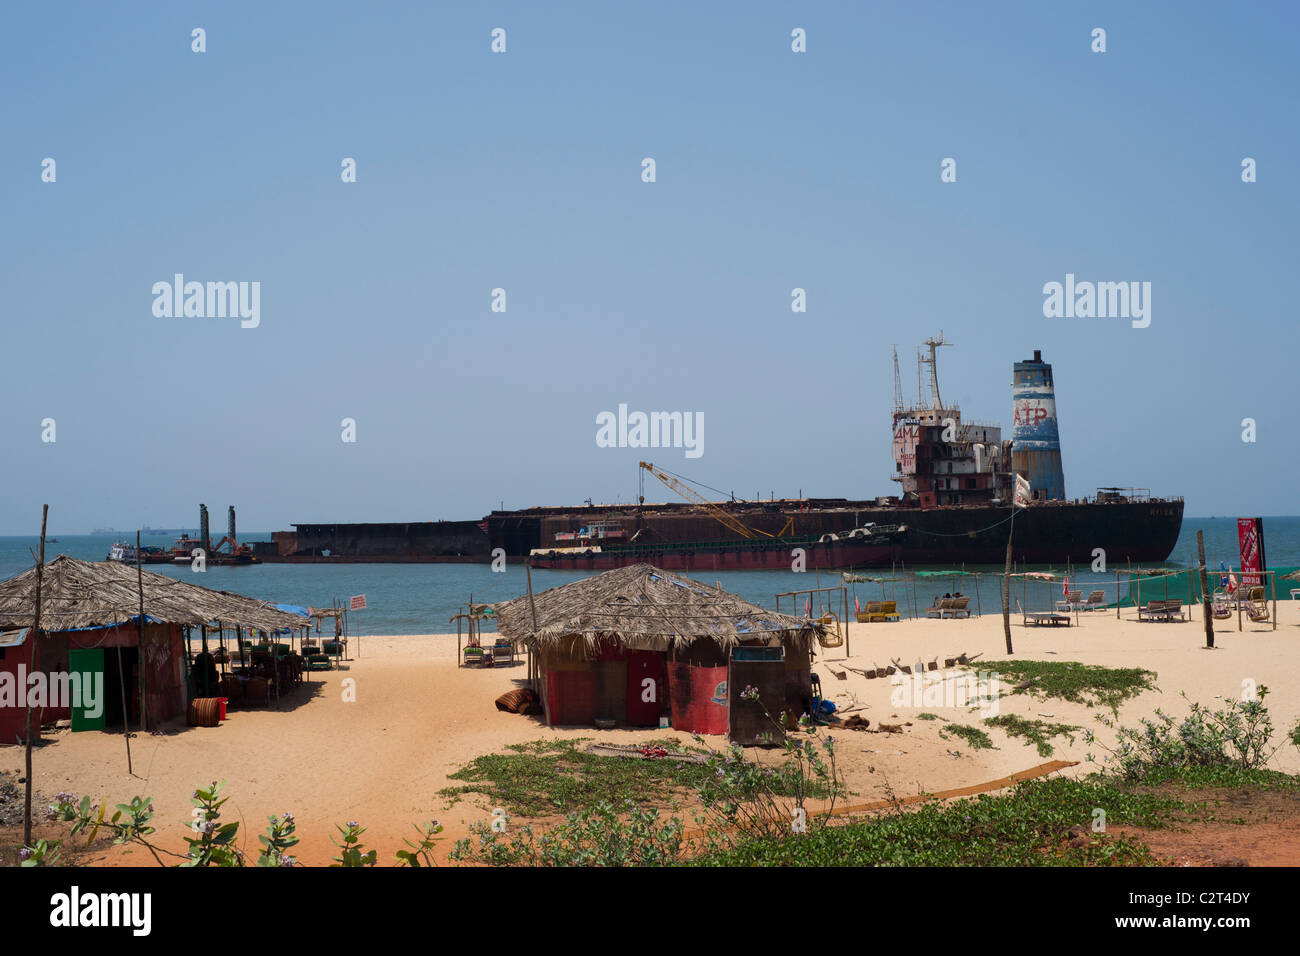 The River Pincess aground at Candolim. - Stock Image